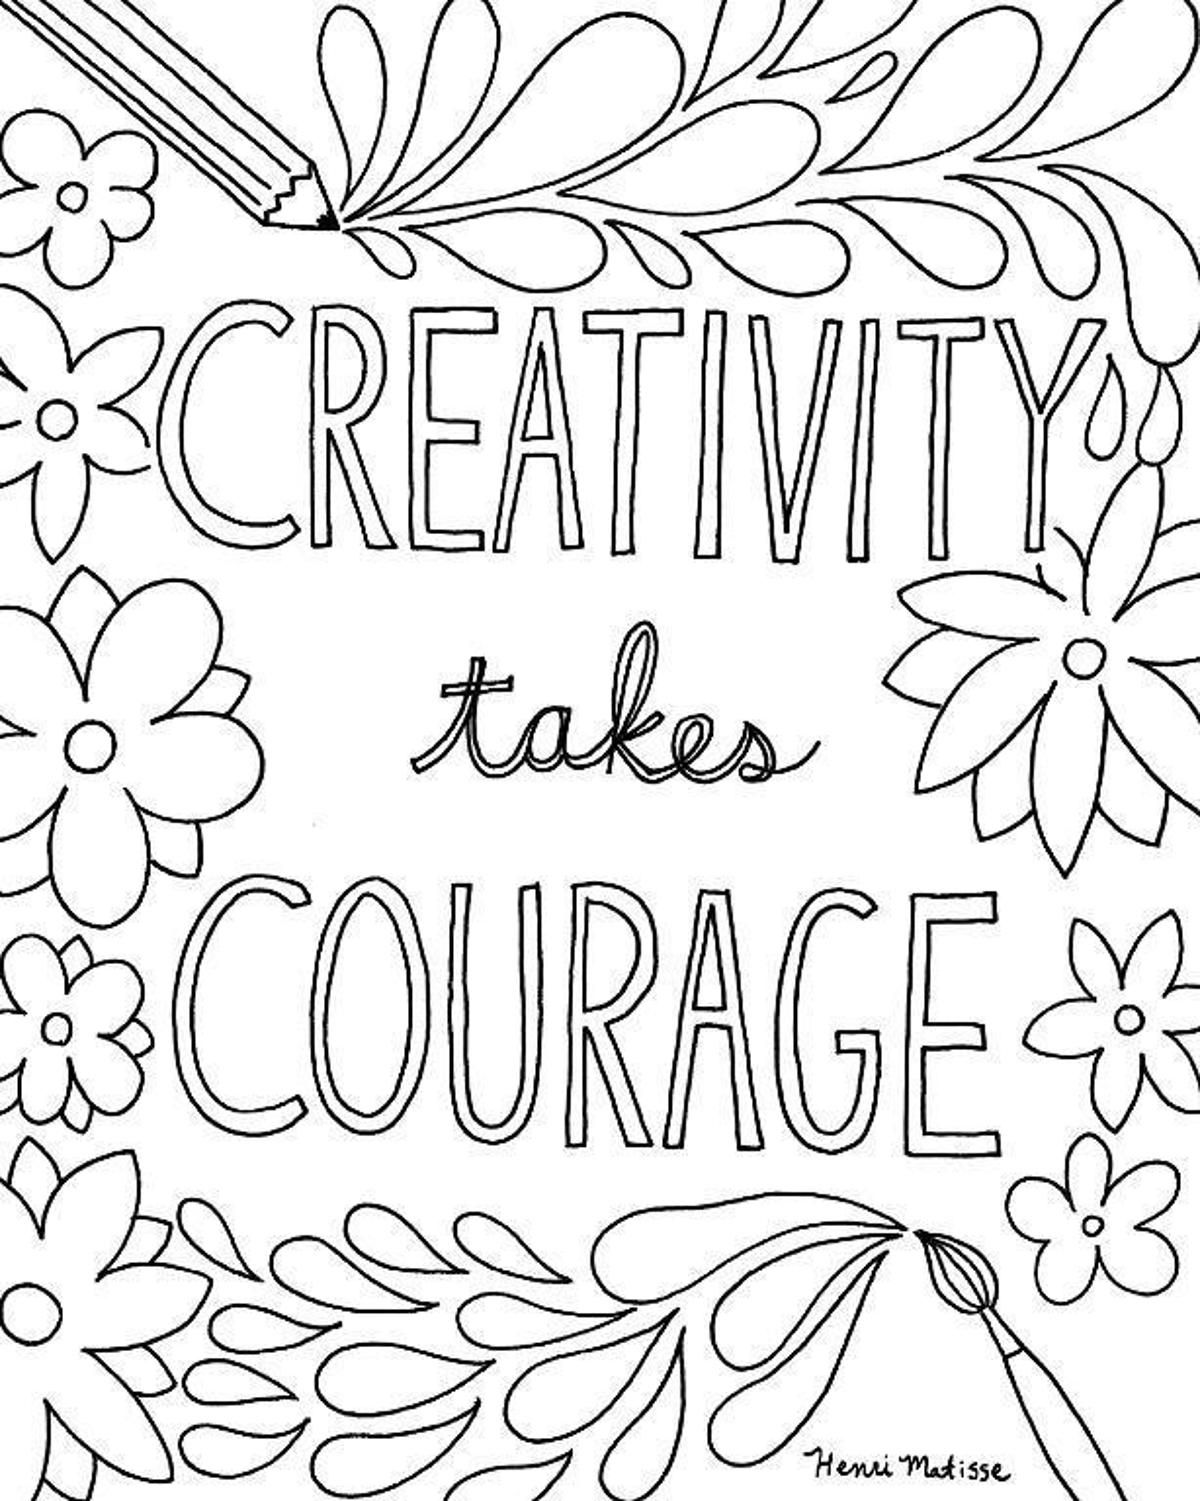 Creativity Takes Courage Coloring Page Quote Coloring Pages